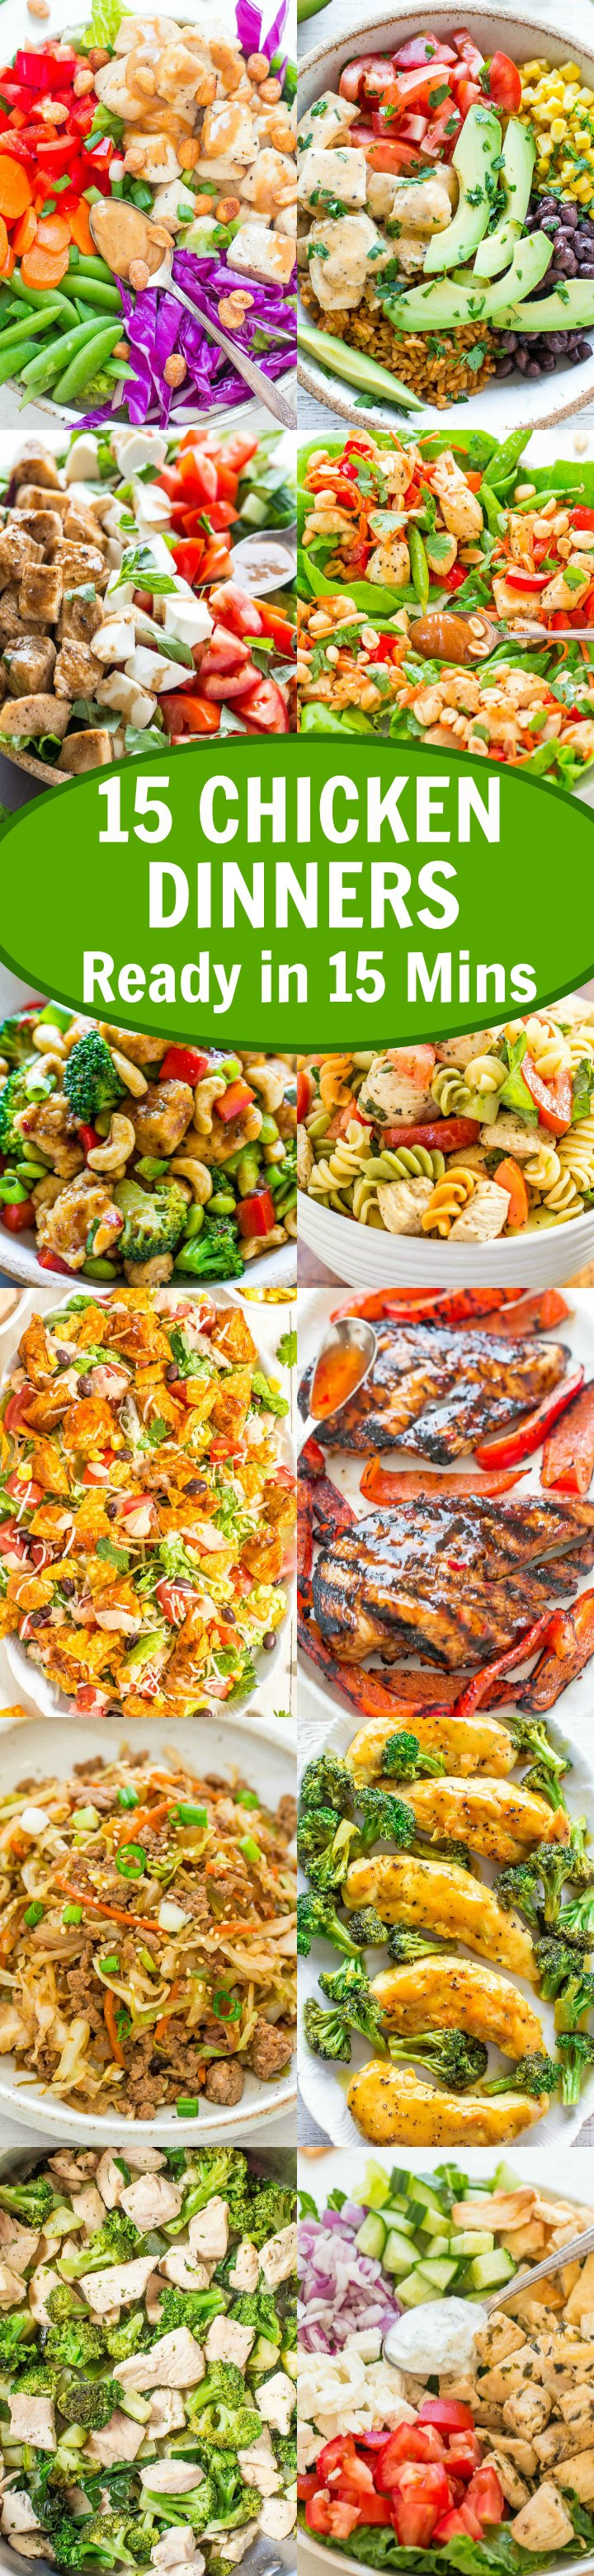 15 Chicken Dinners Ready in 15 Minutes - EASY dinners that are ready in a flash and PERFECT for busy weeknights!! DELISH, healthy, and guaranteed to please your toughest dinner critics!!